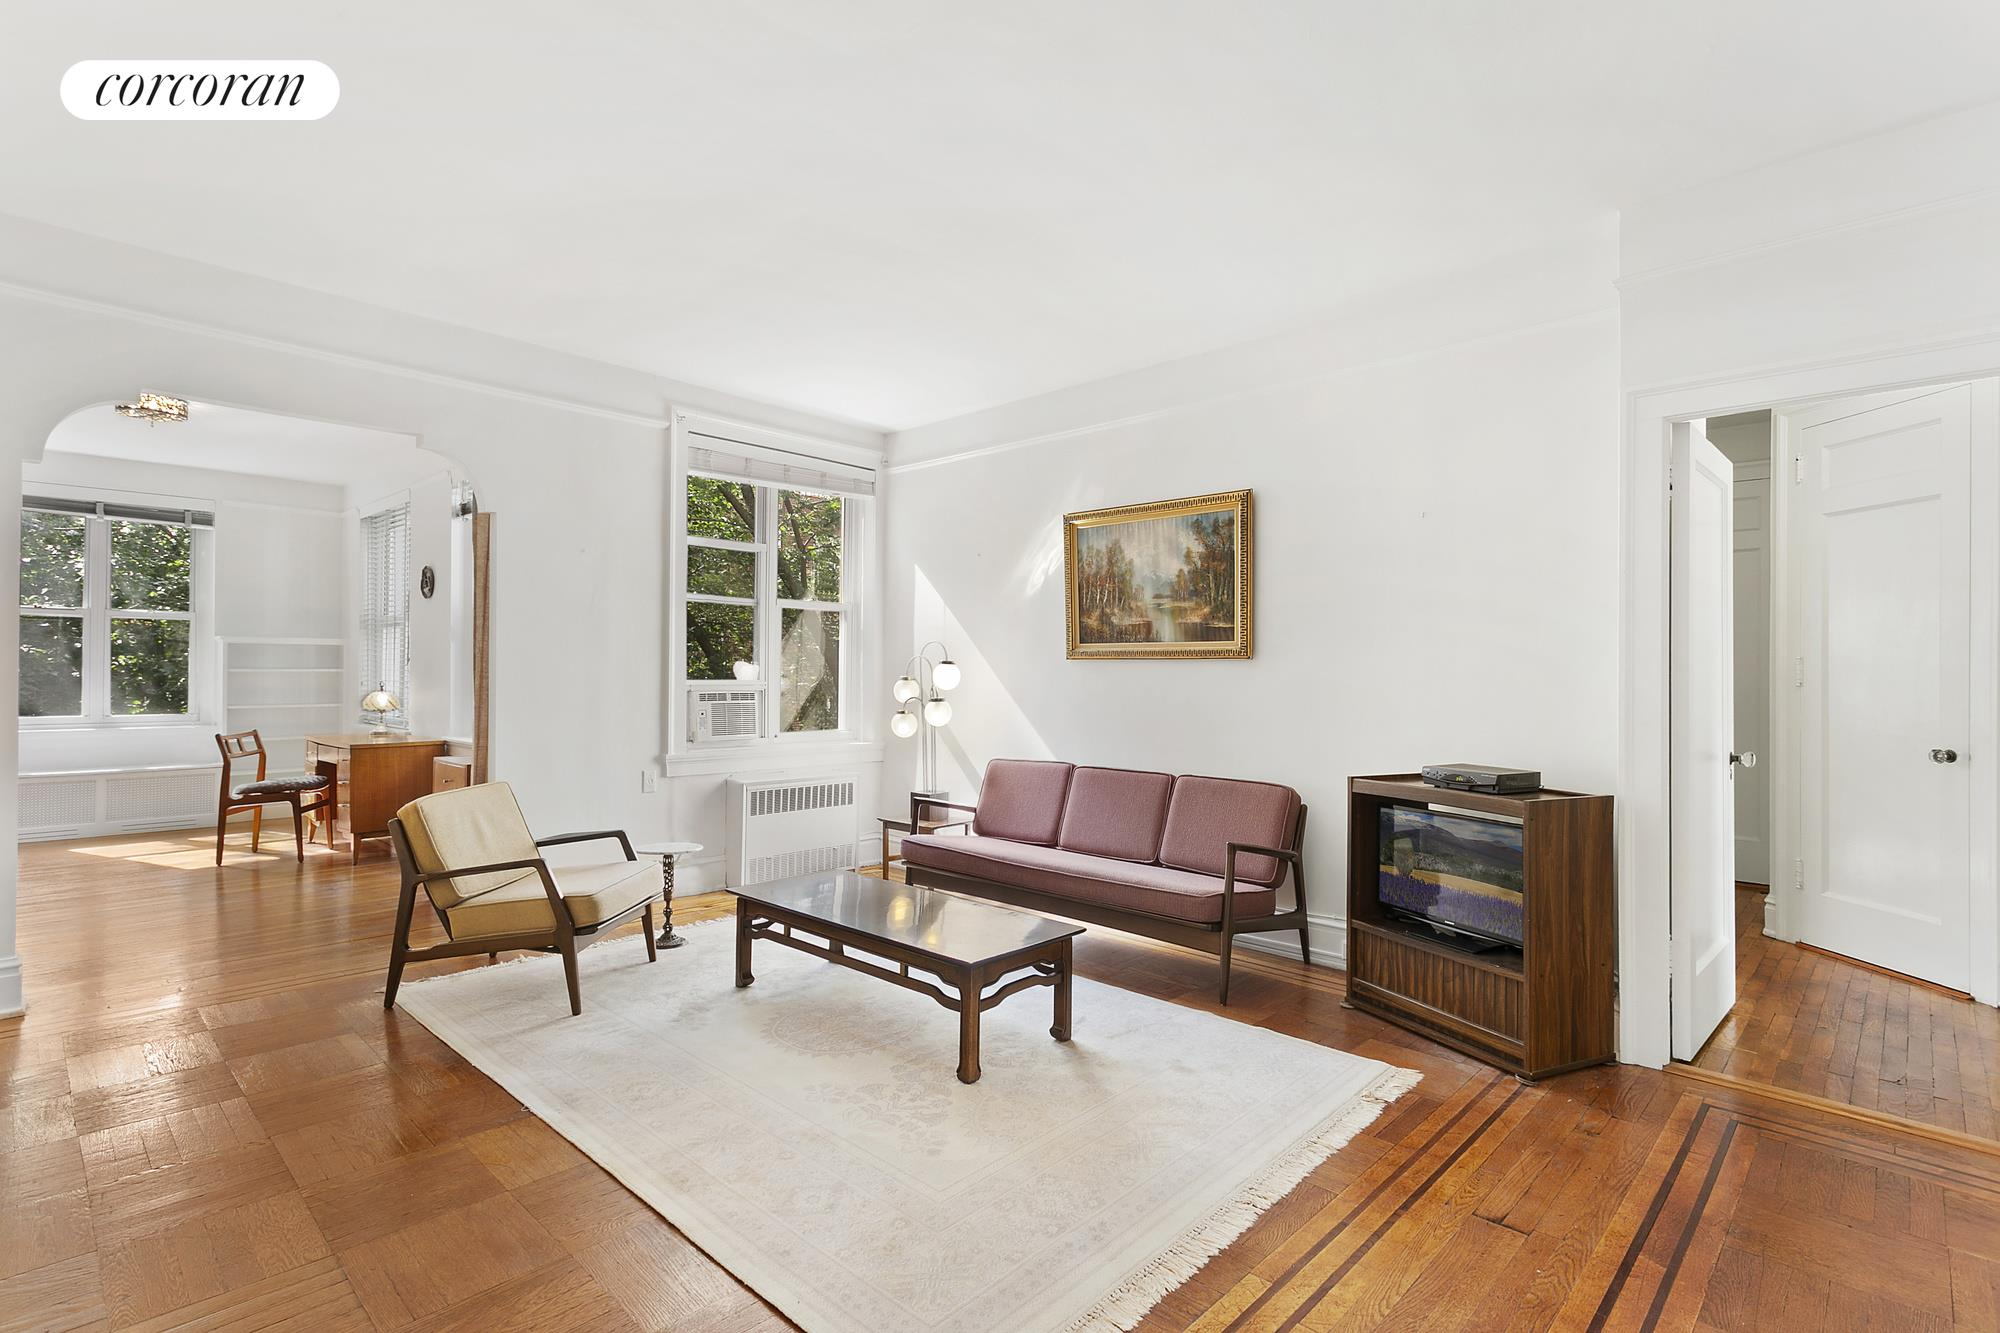 34-28 80th Street, 41, Living Room and Sunroom